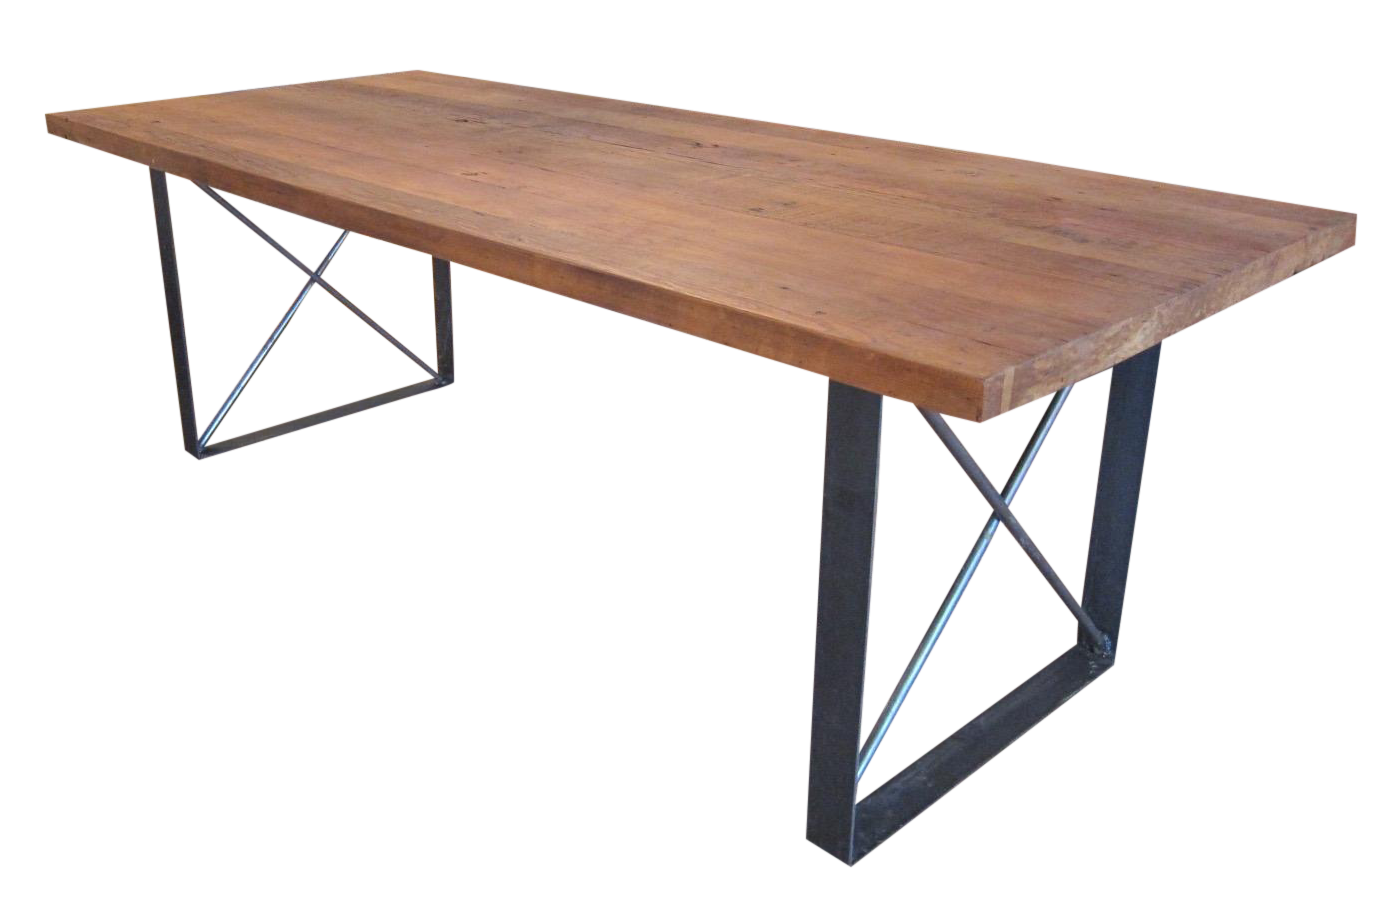 Reclaimed Wood Dining Table Chairish : reclaimed wood dining table 2740 from www.chairish.com size 1388 x 913 png 898kB